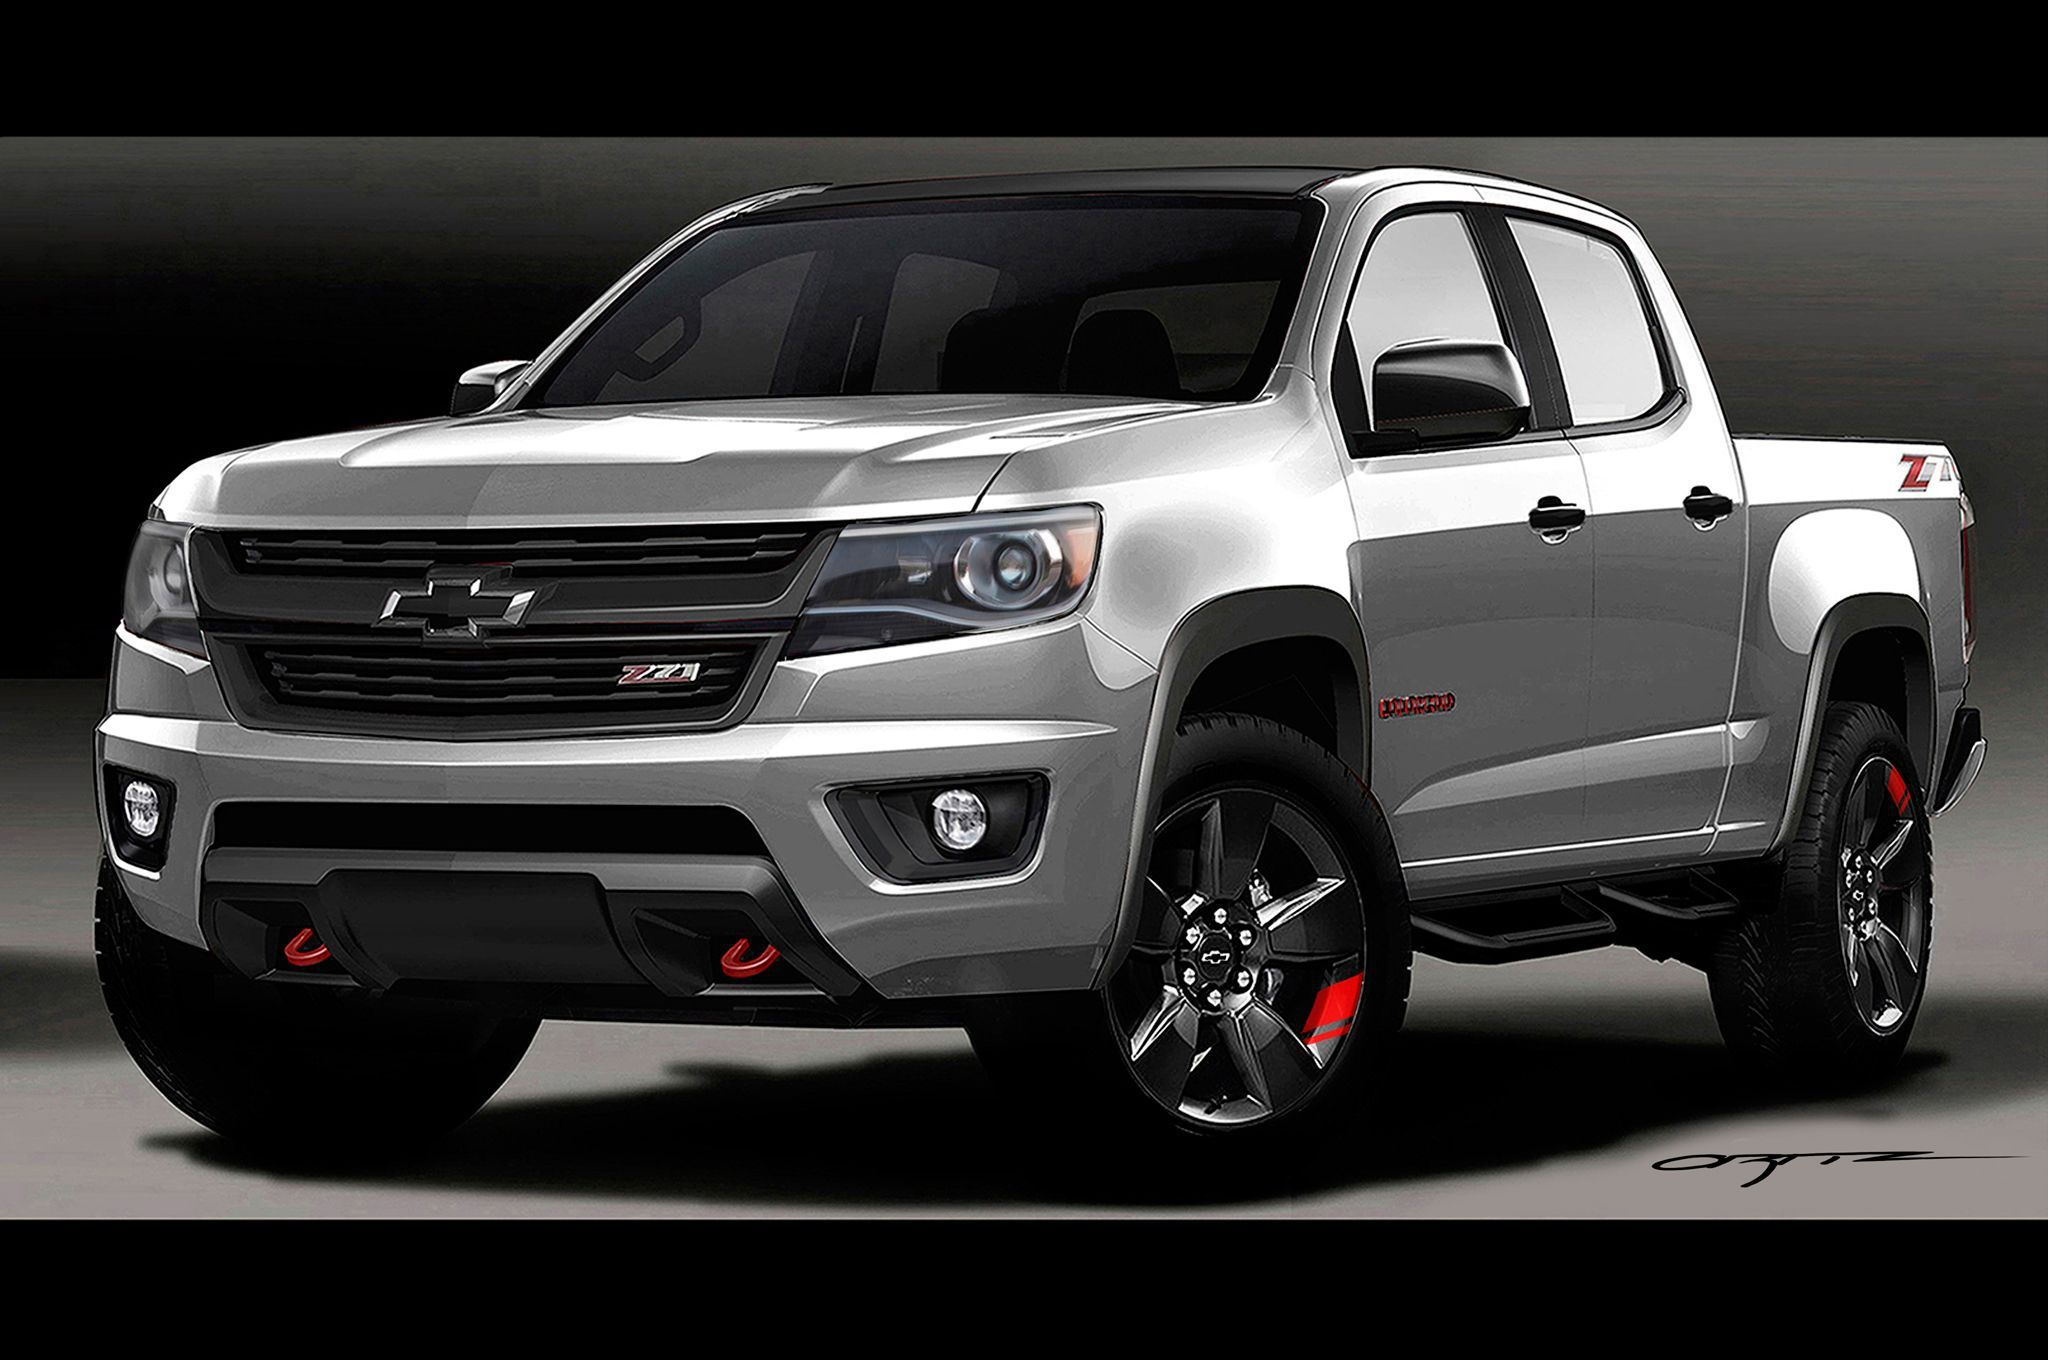 2020 Chevy Colorado ZR2 Redesign, Changes, Release Date, And Price >> 2020 Chevy Colorado Redesign Release Date And Price Rumors